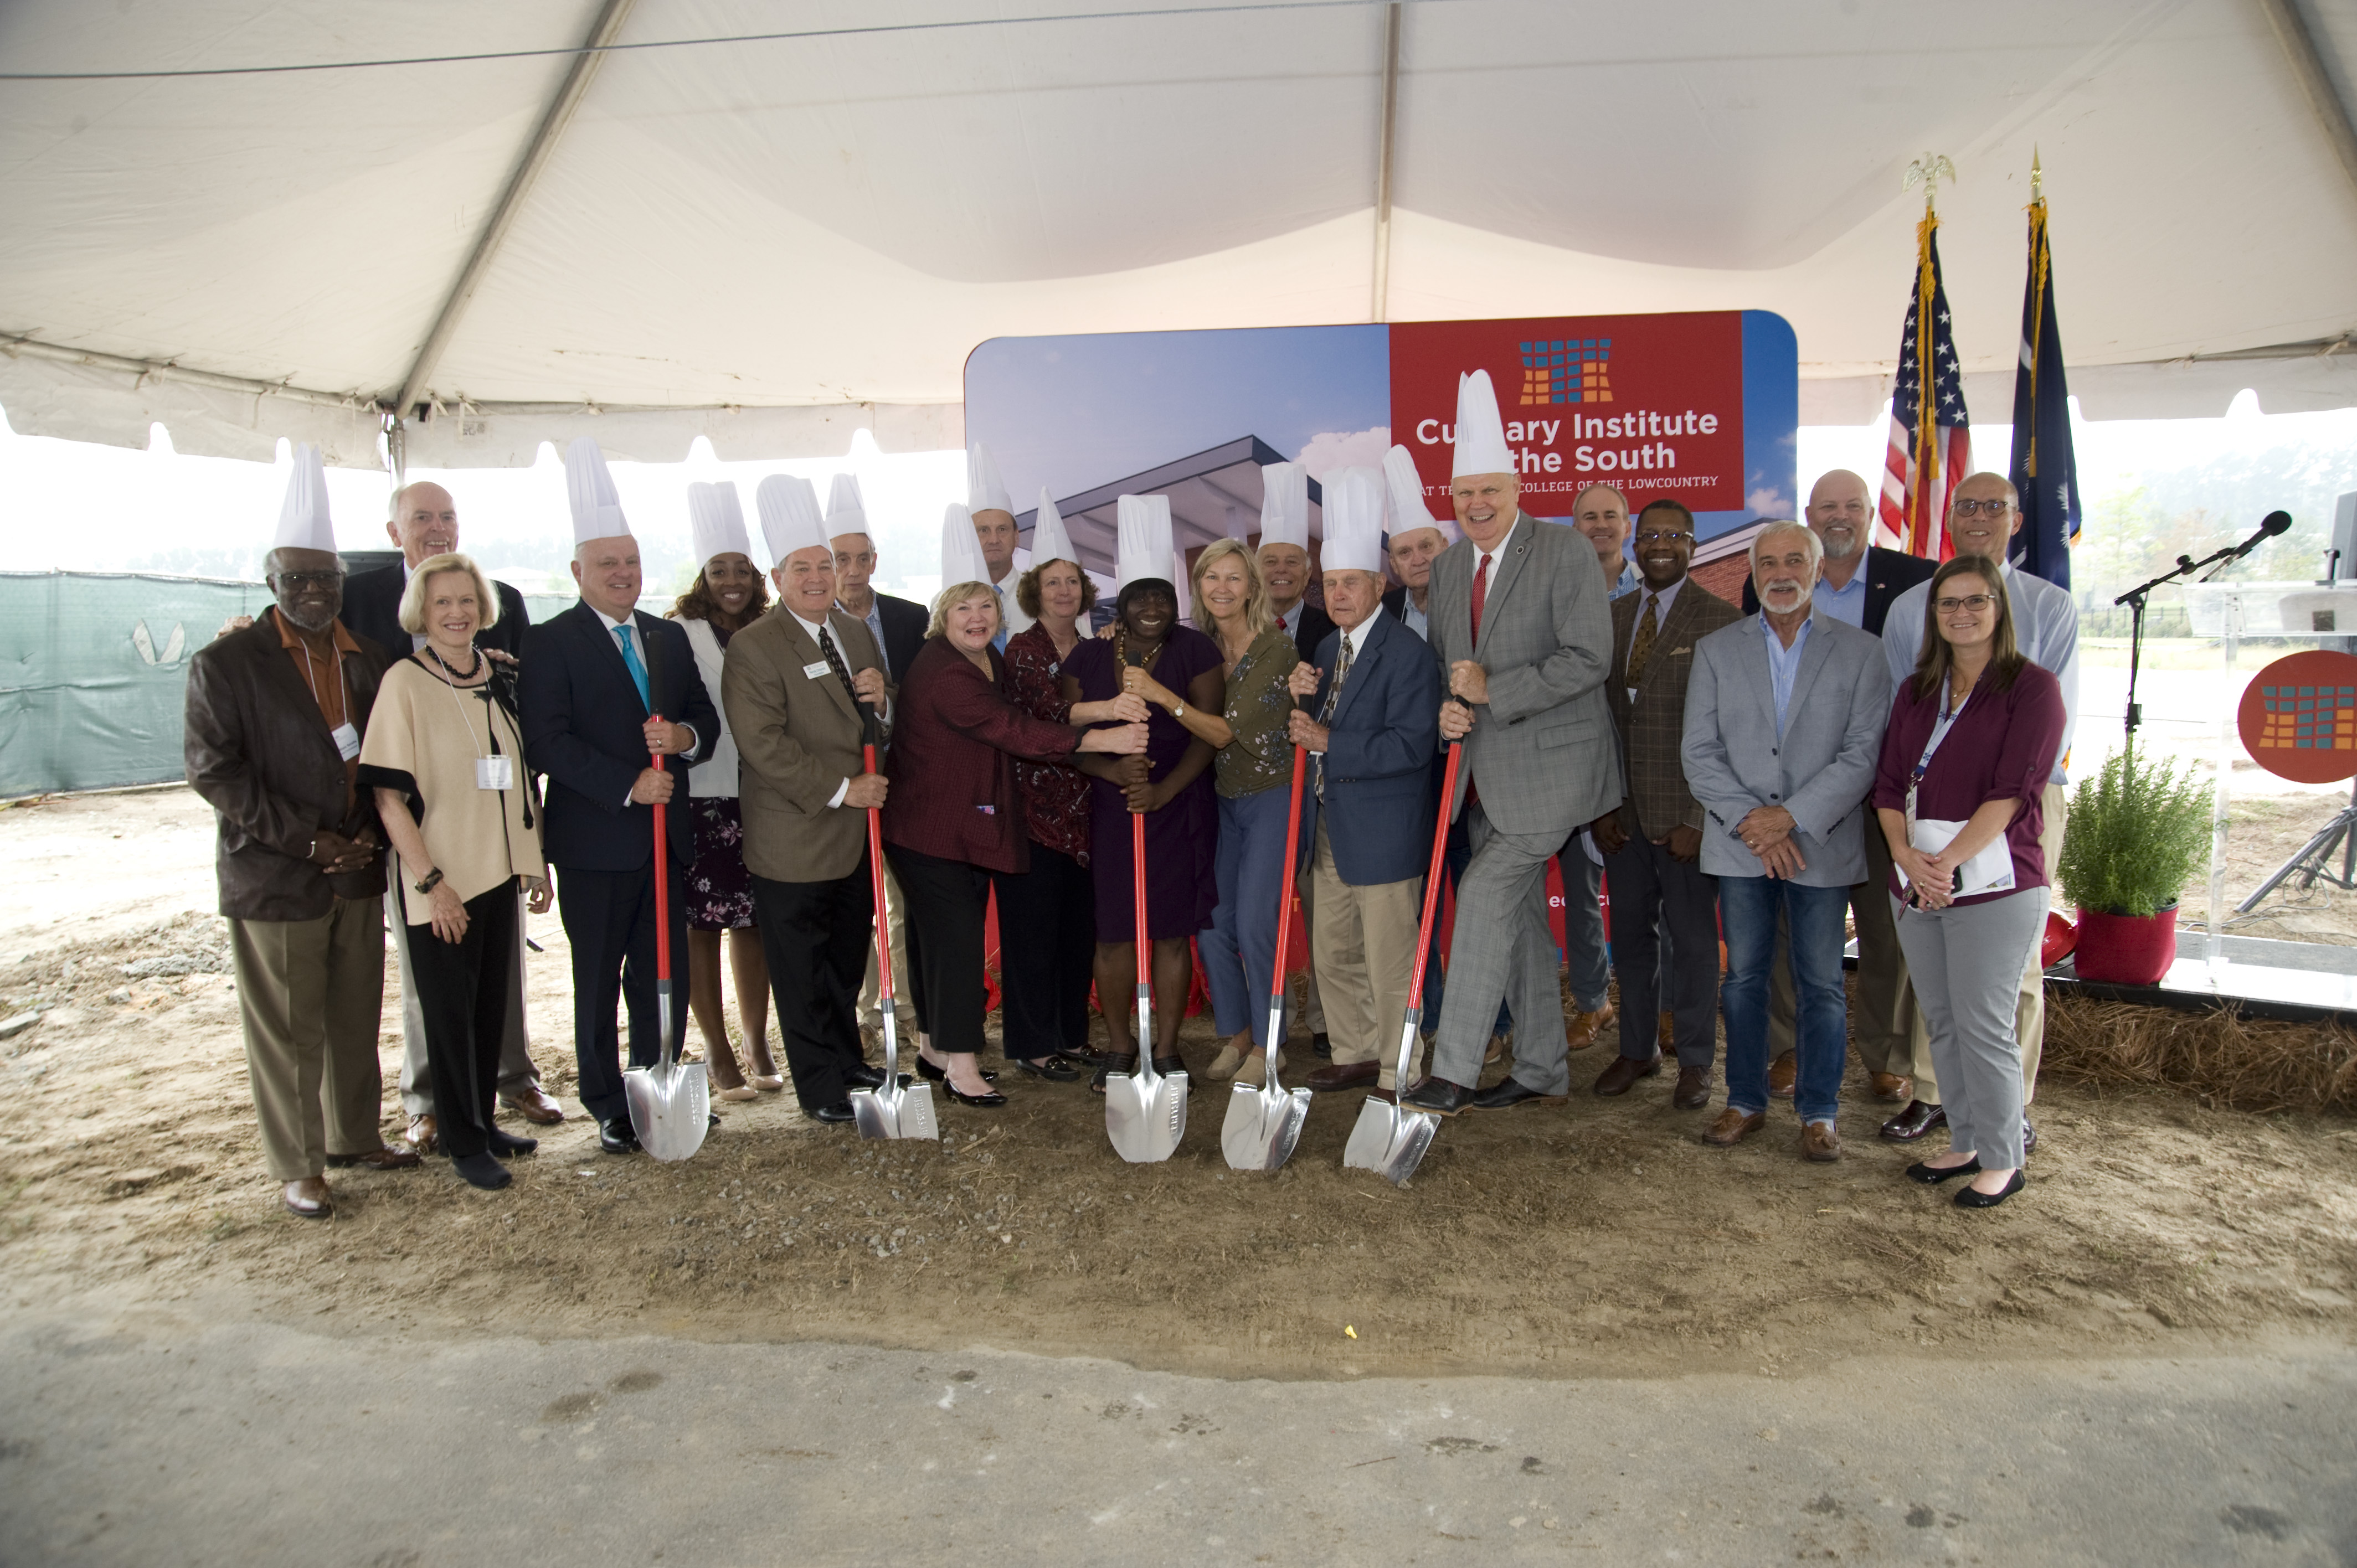 Culinary Institute of the South breaks ground